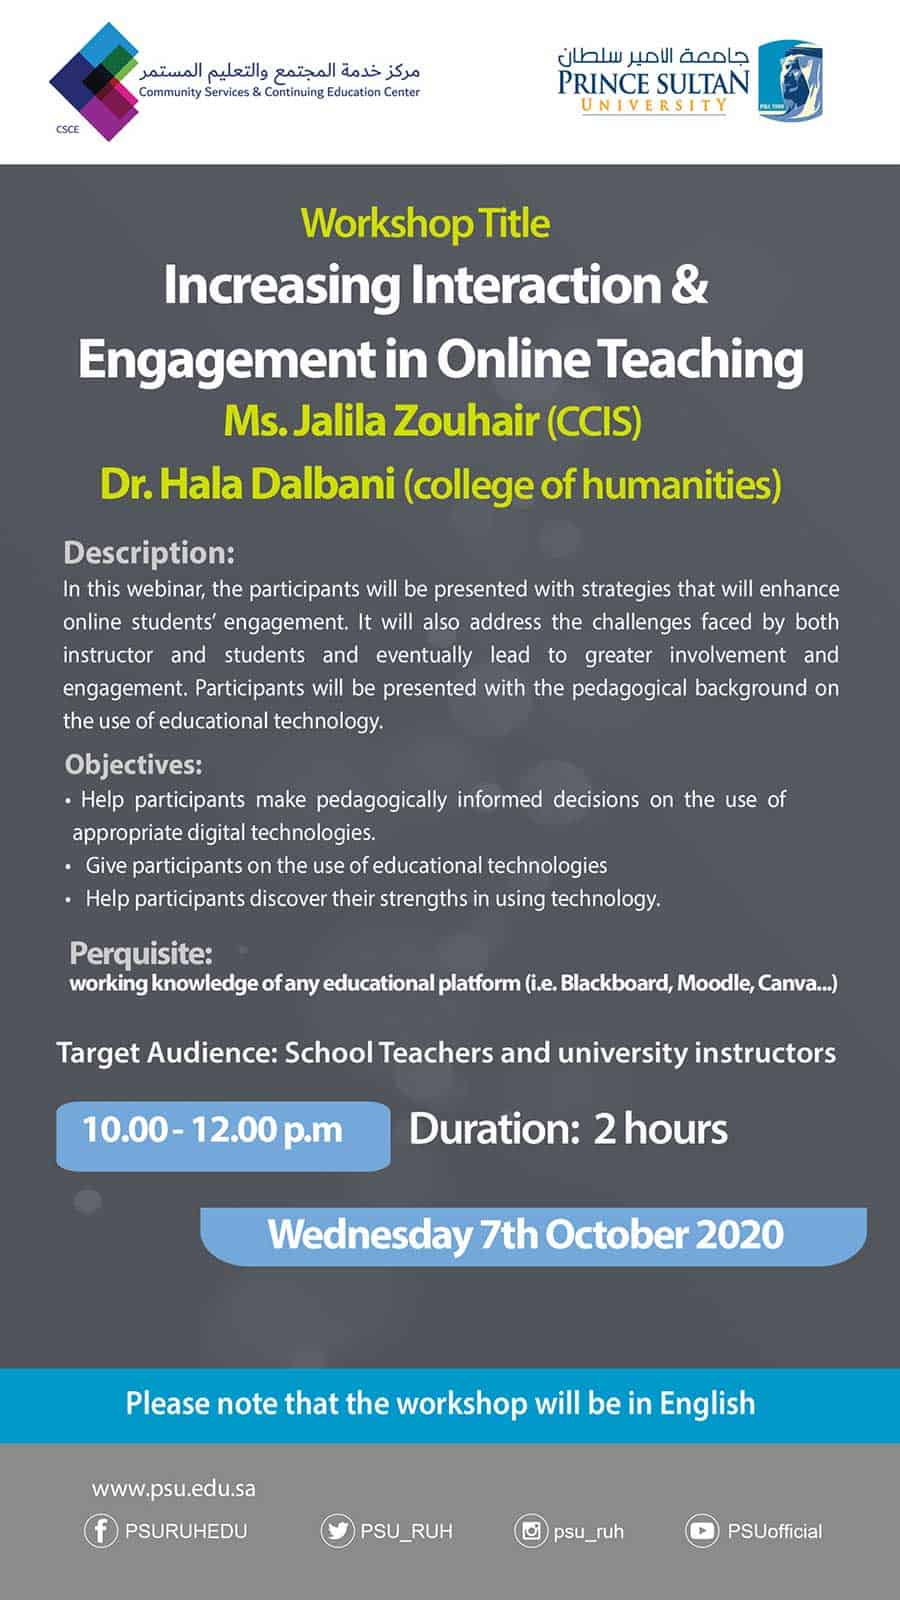 Increasing Interaction & Engagement in Online Teaching